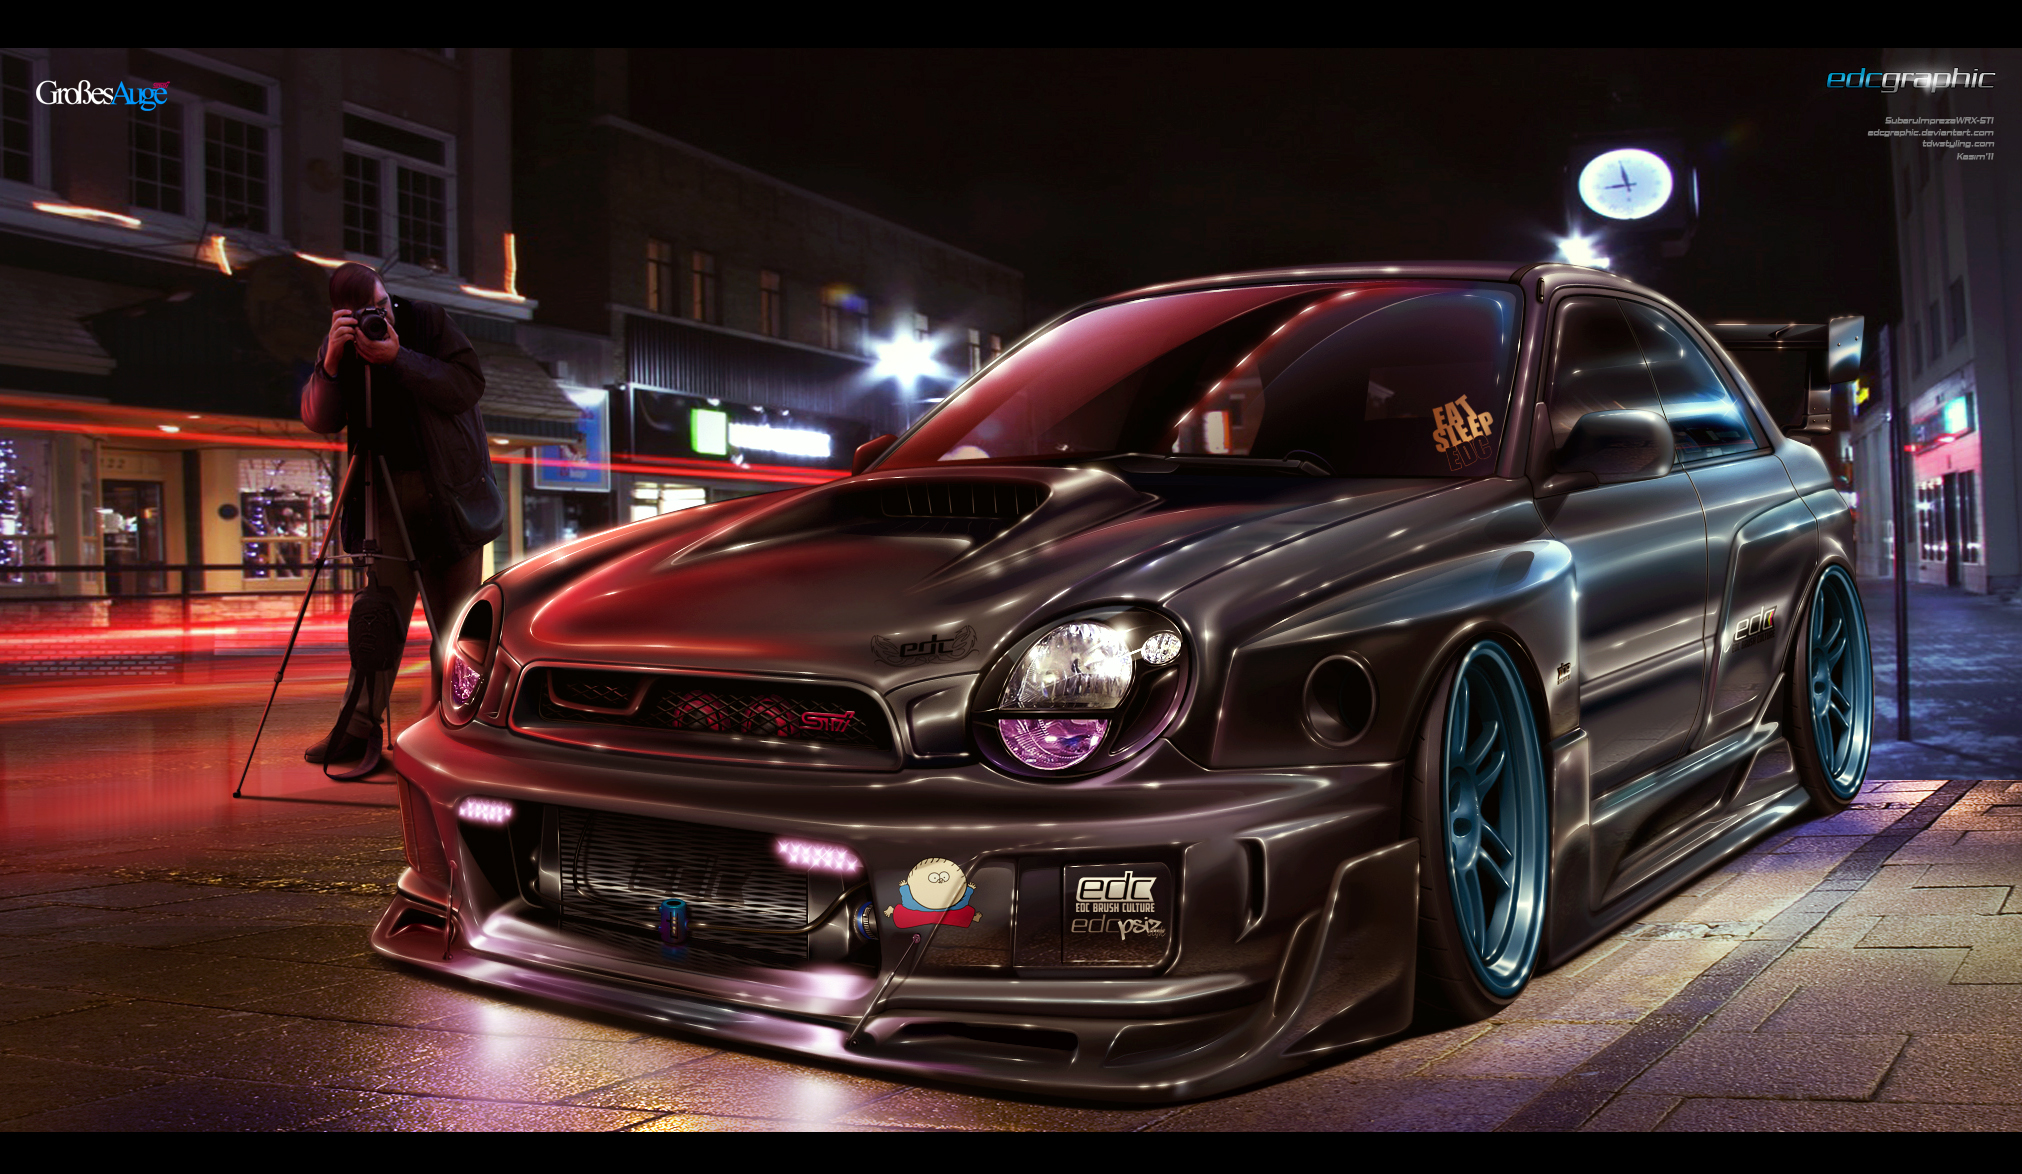 Subaru Impreza Sti EDC Graphic by edcgraphic